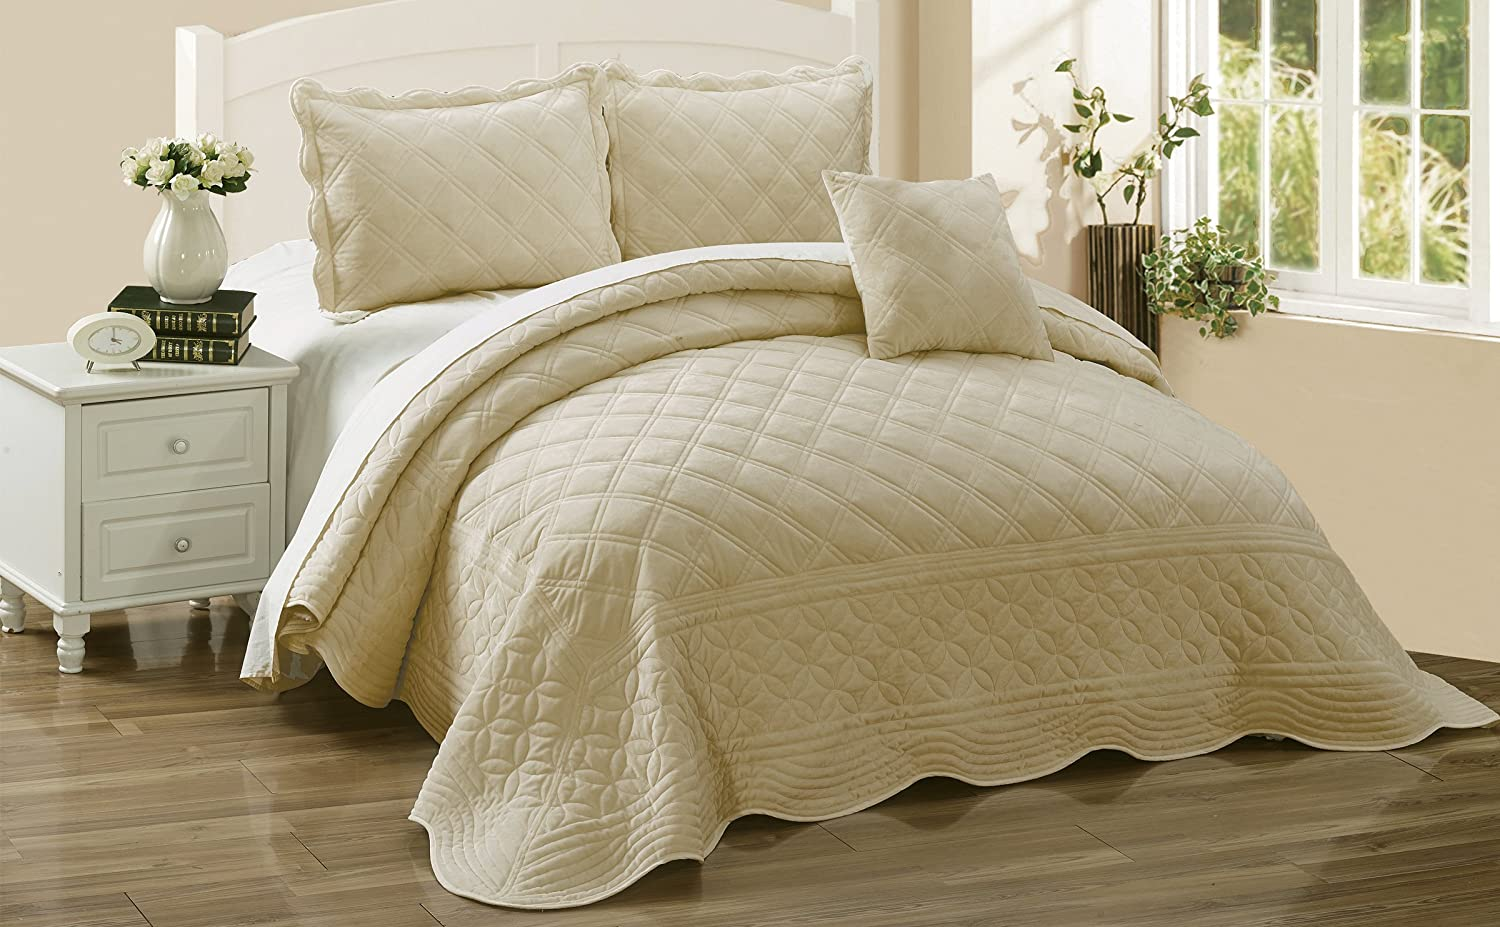 Oatmeal 120  x 120  Serenta Super Soft Microplush Quilted 4 PCs Bedspread Set. King, bluee Sapphire